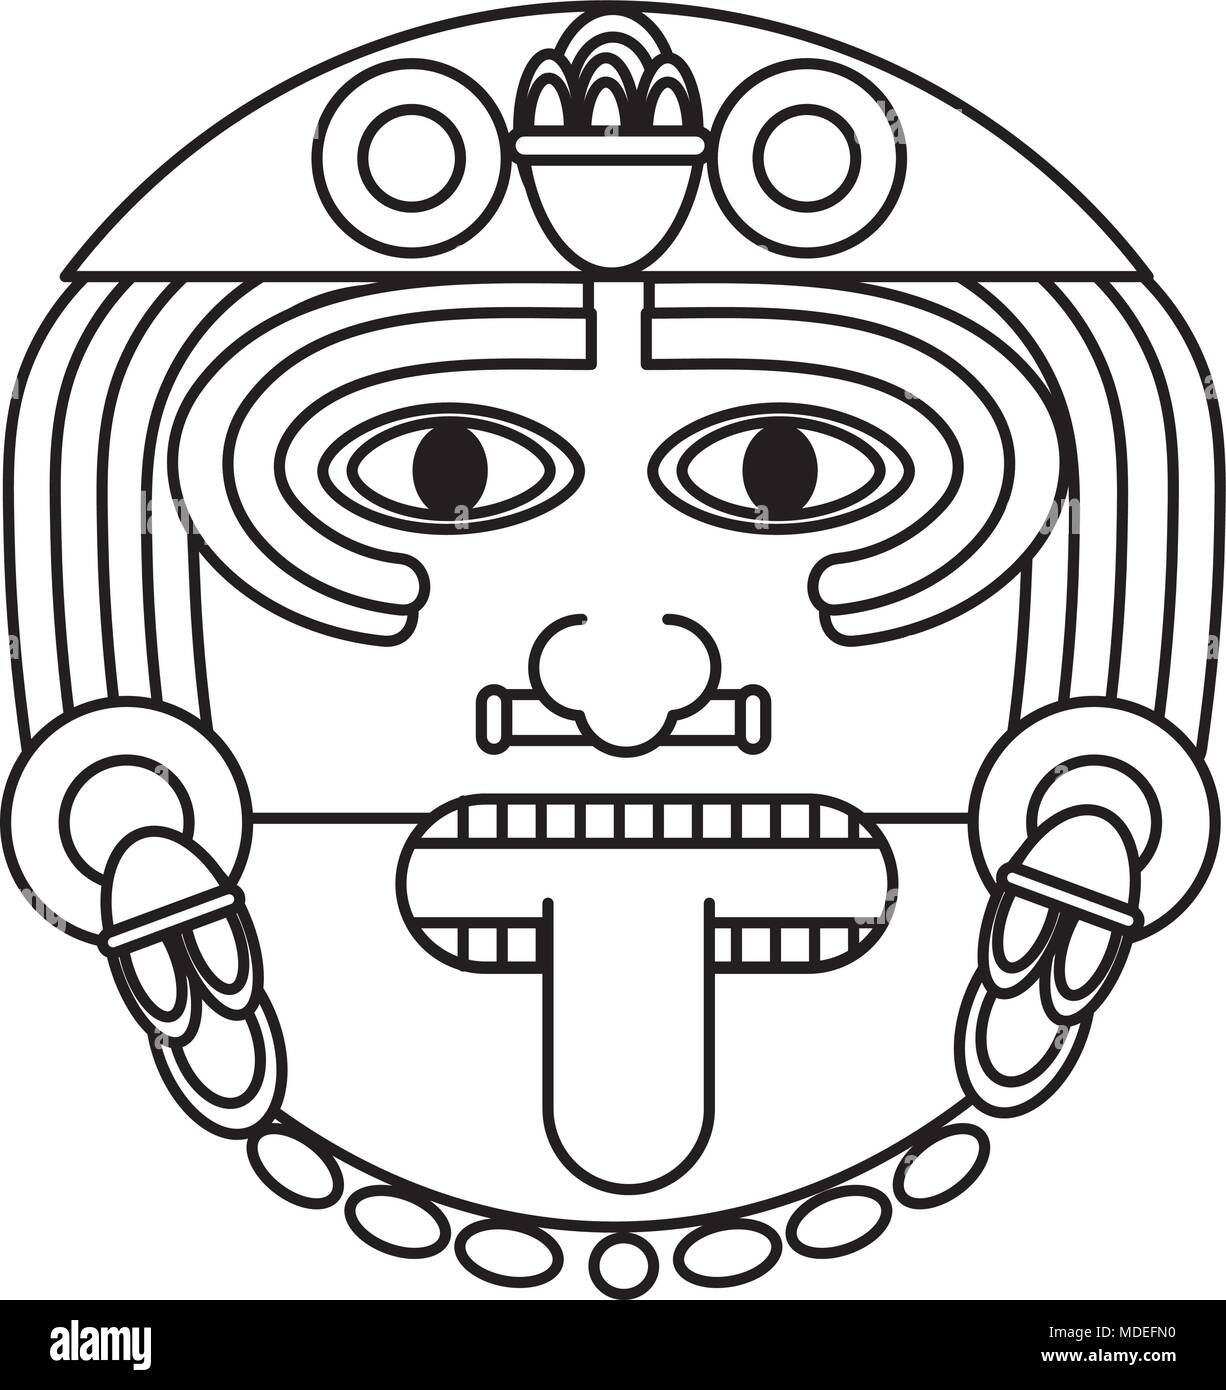 Line Aztec Sun God Culture Symbol Stock Vector Art Illustration